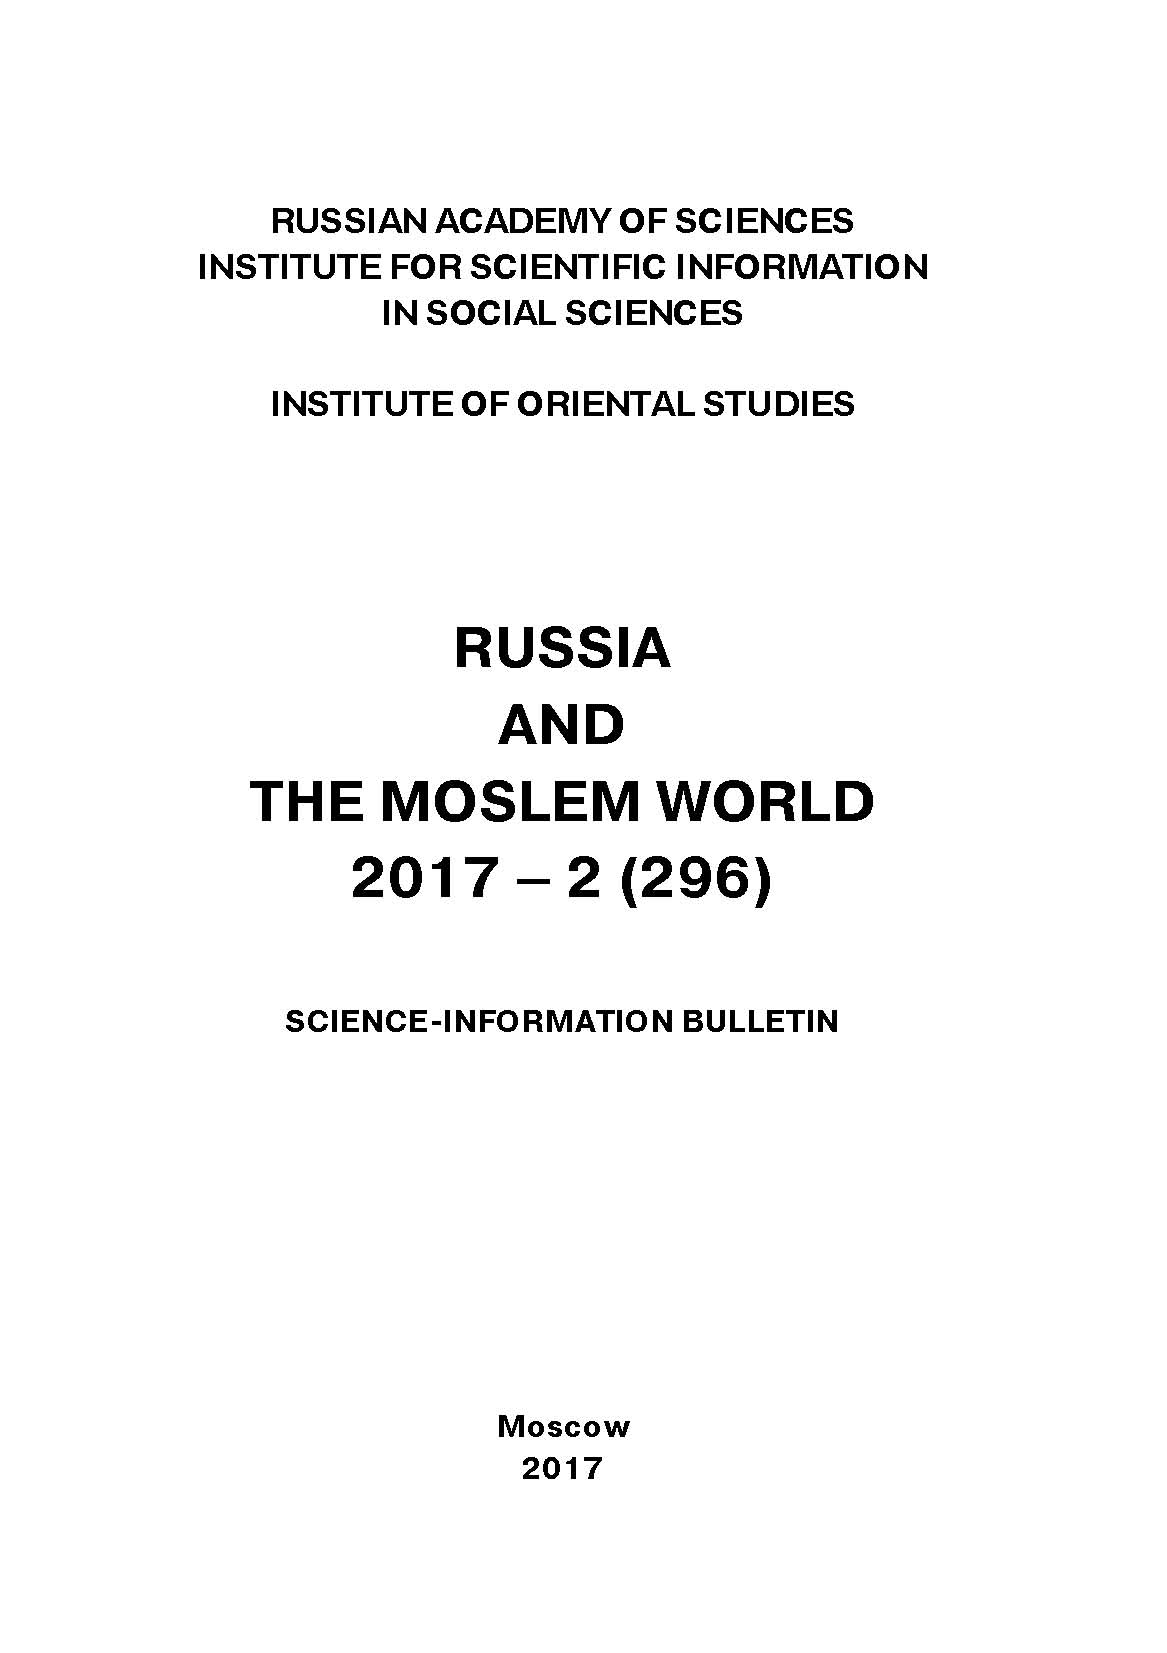 Russia and the Moslem World № 02 / 2017